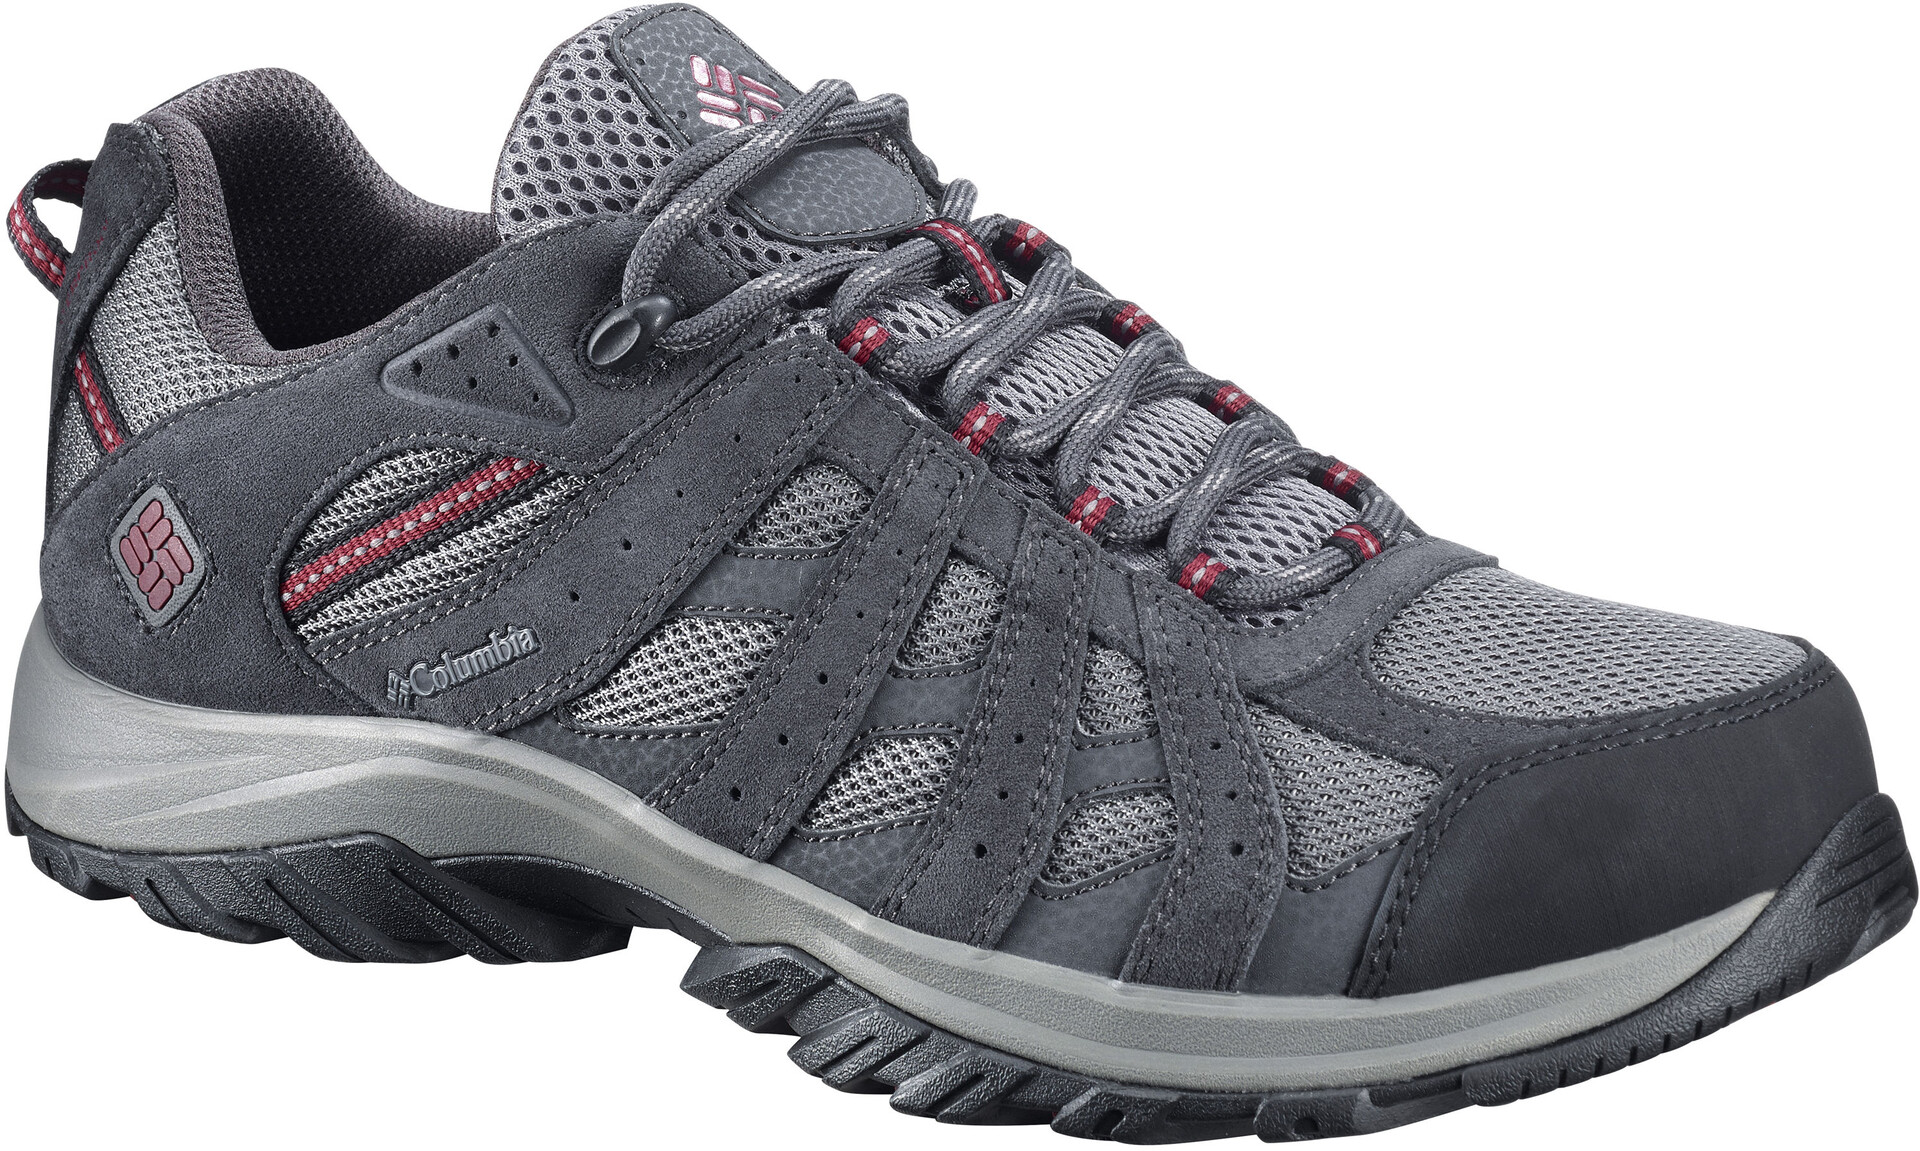 Uomo Xt Redmond Waterproof Grigio Columbia Su Scarpe it Addnature wRq7xf